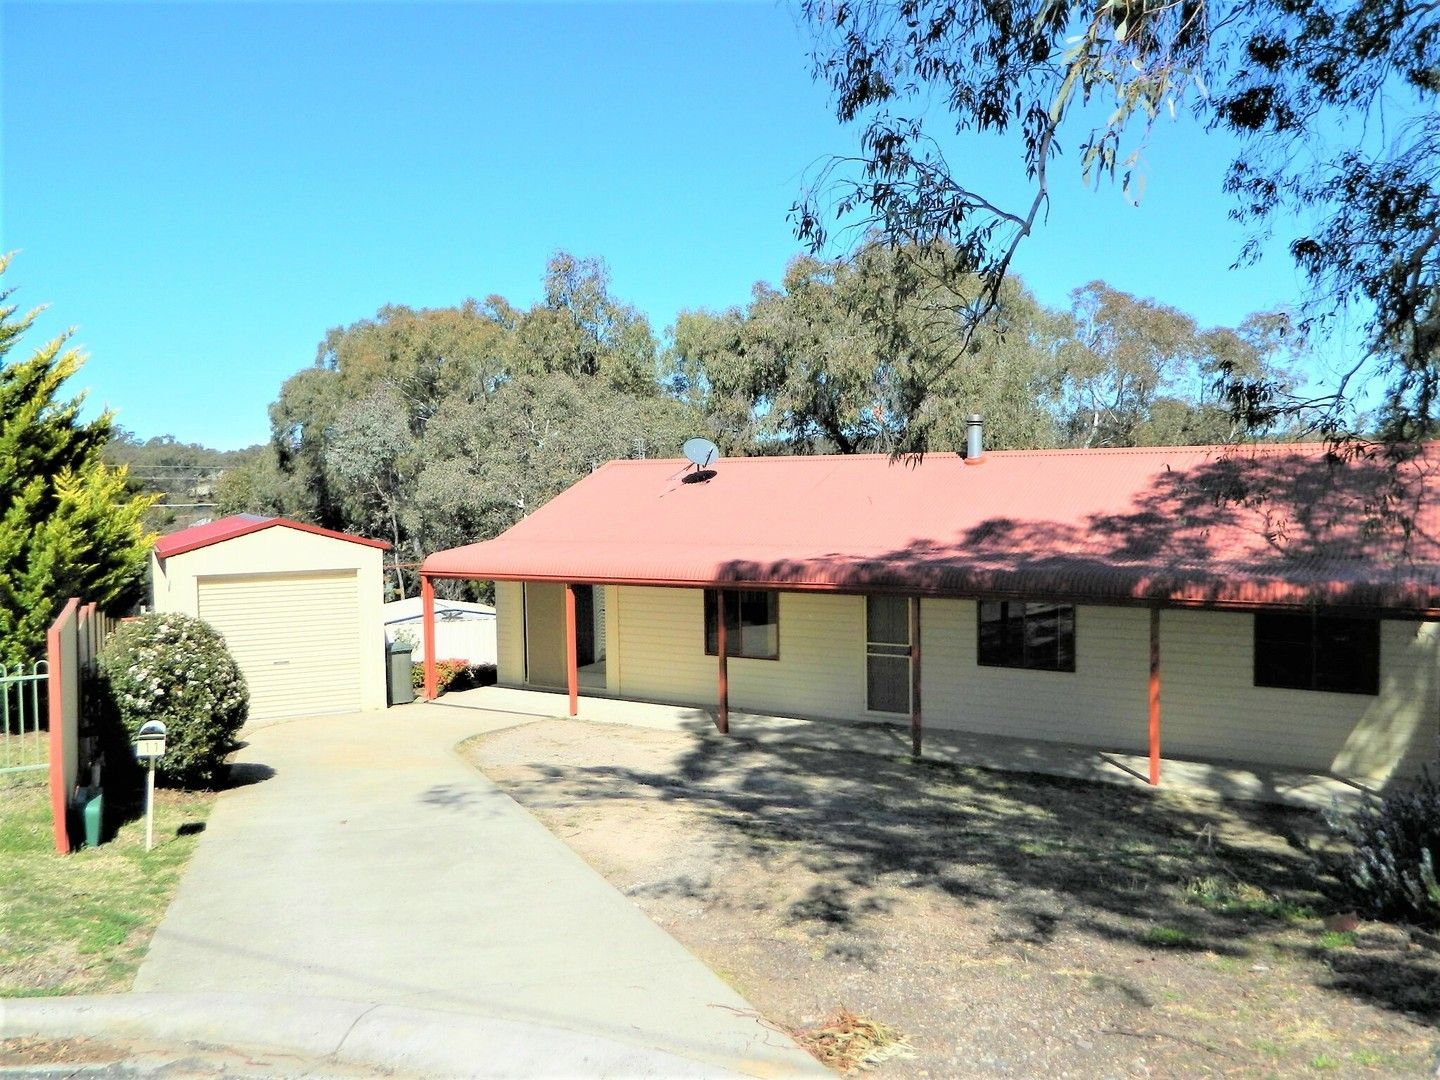 11 Armstrong St, Rylstone NSW 2849, Image 0